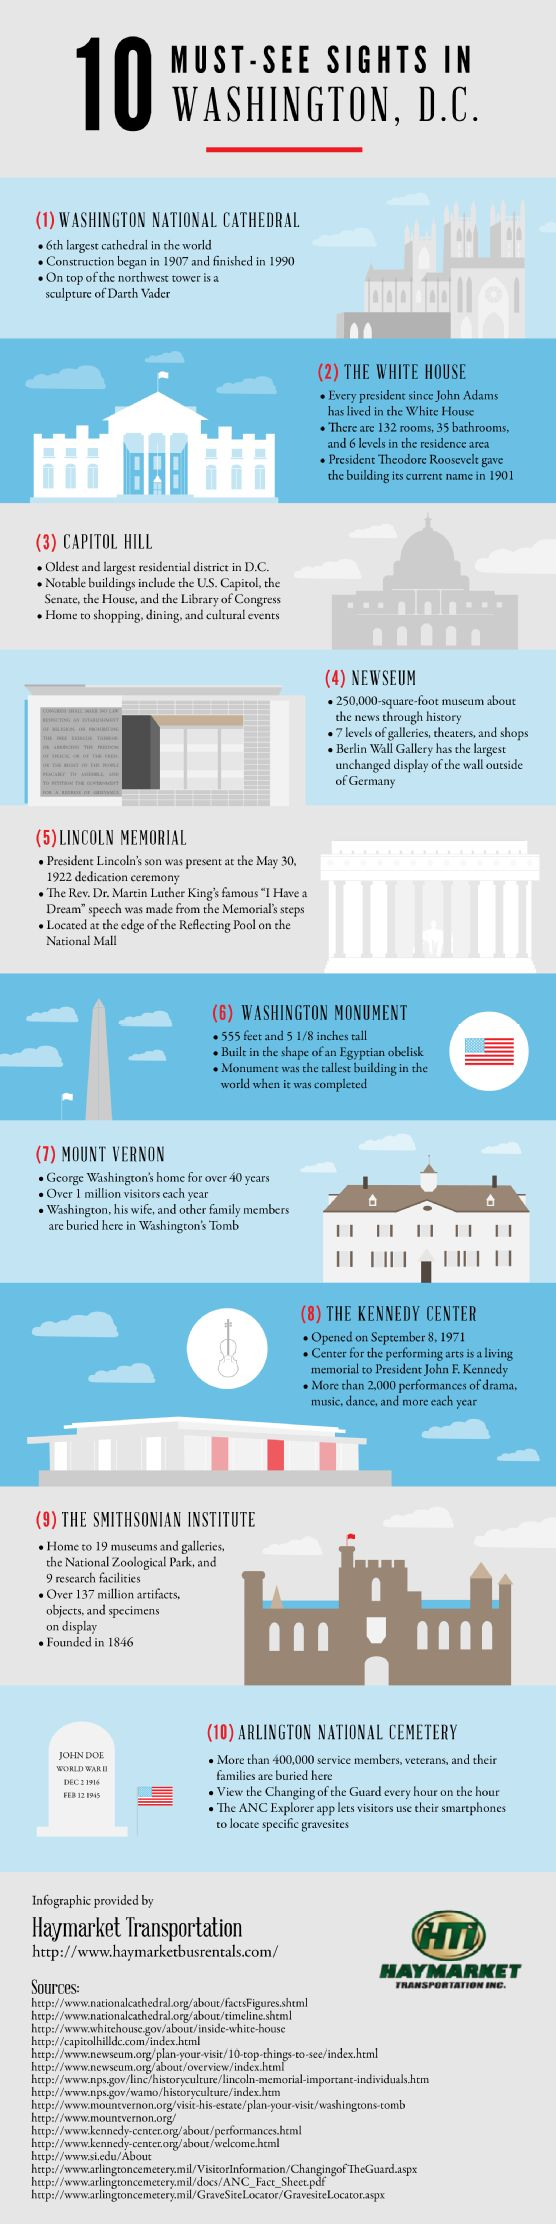 10 must see sights in D.C. ... been to 6 of 10 places so far, it's a good start